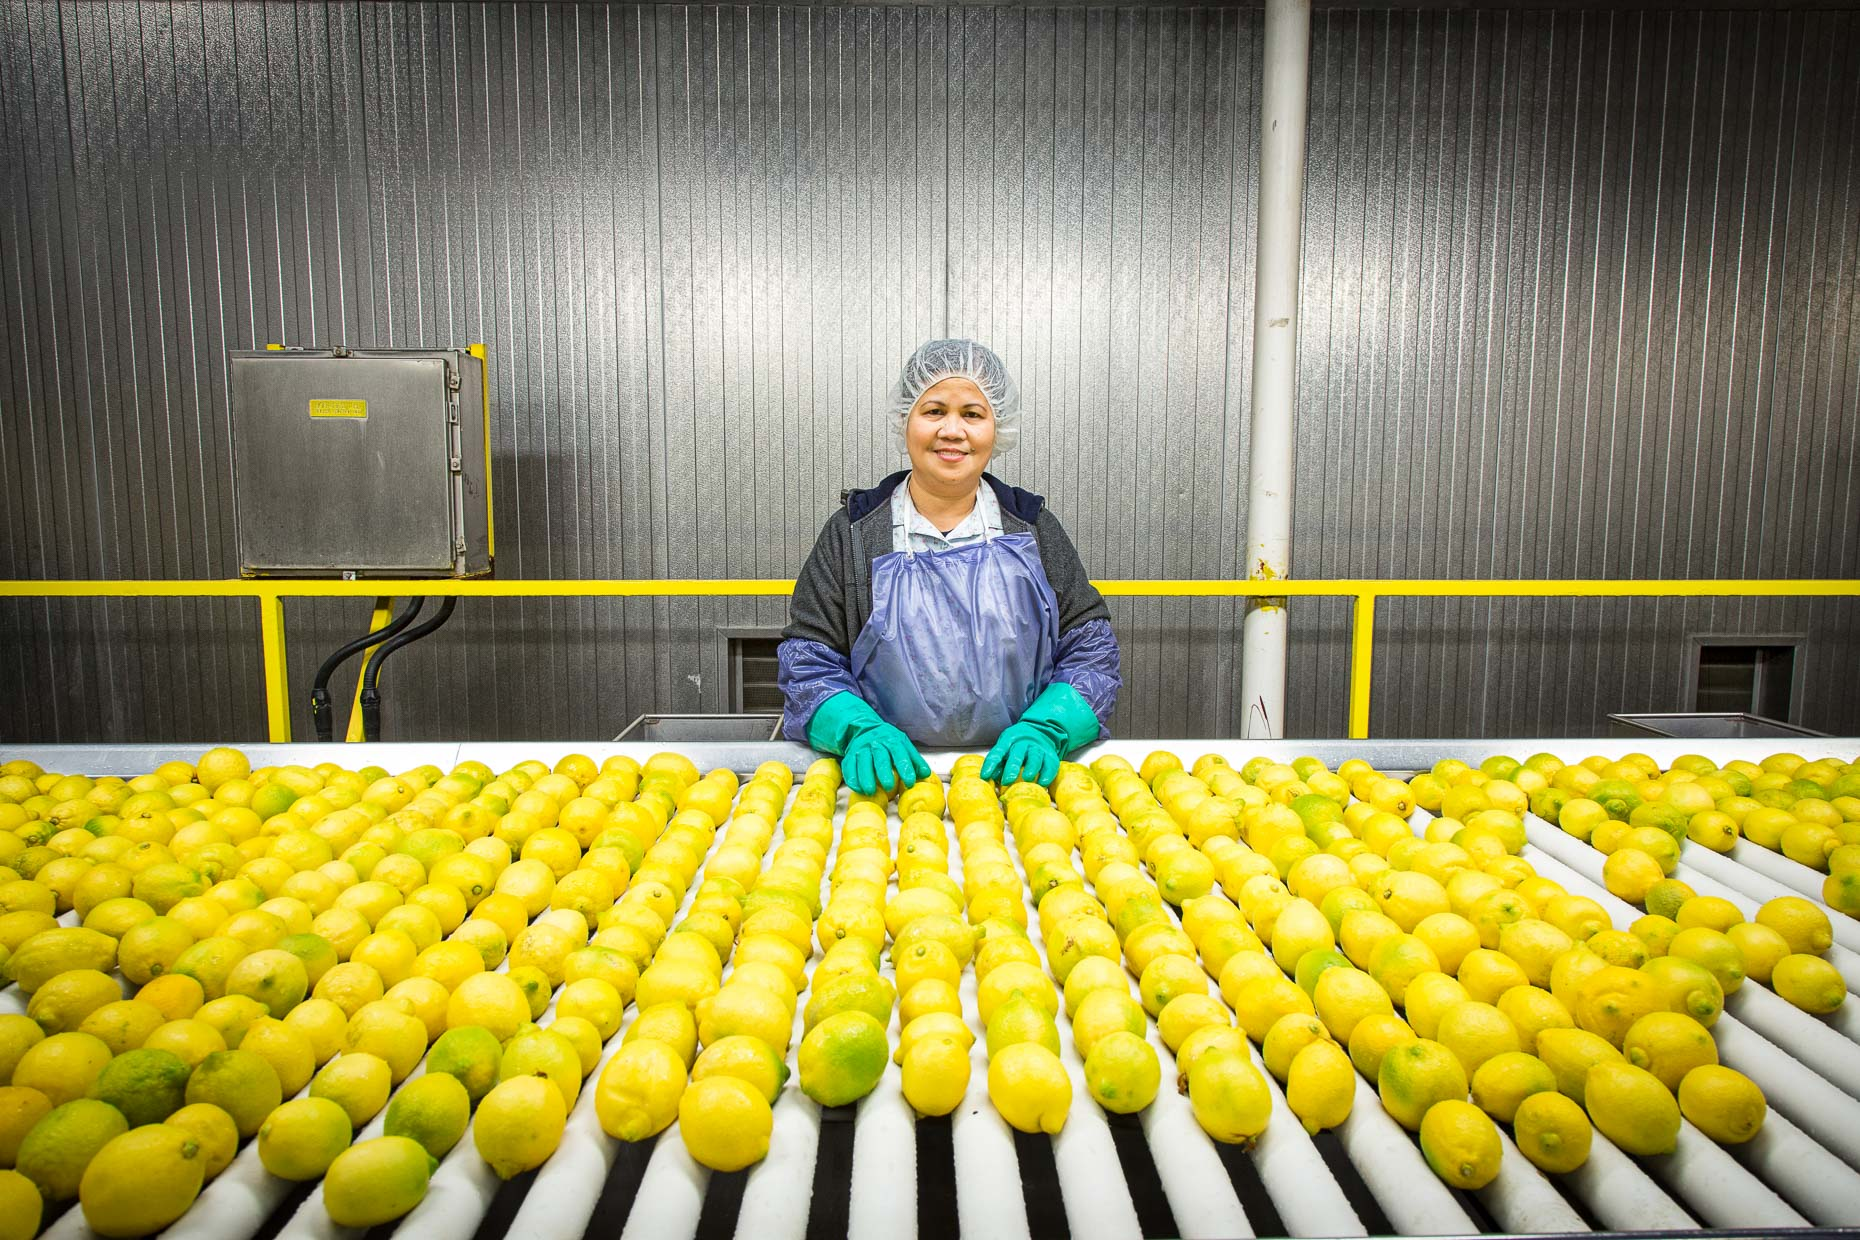 Woman in citrus processing plant at conveyer belt with lemons by David Zaitz.